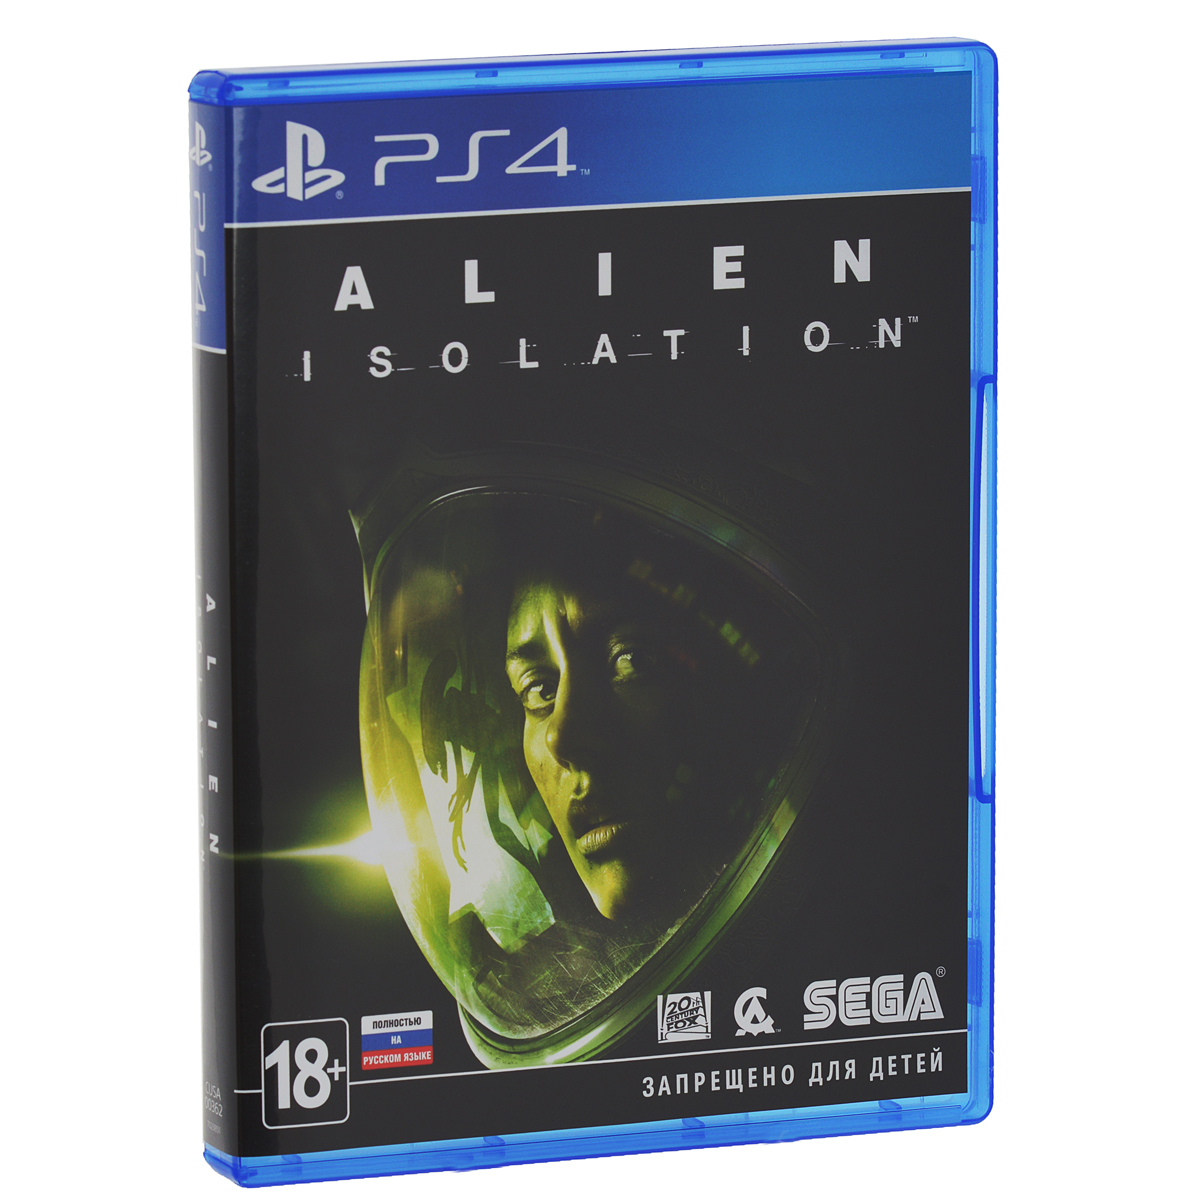 Alien: Isolation (PS4) rm1 2337 rm1 1289 fusing heating assembly use for hp 1160 1320 1320n 3390 3392 hp1160 hp1320 hp3390 fuser assembly unit